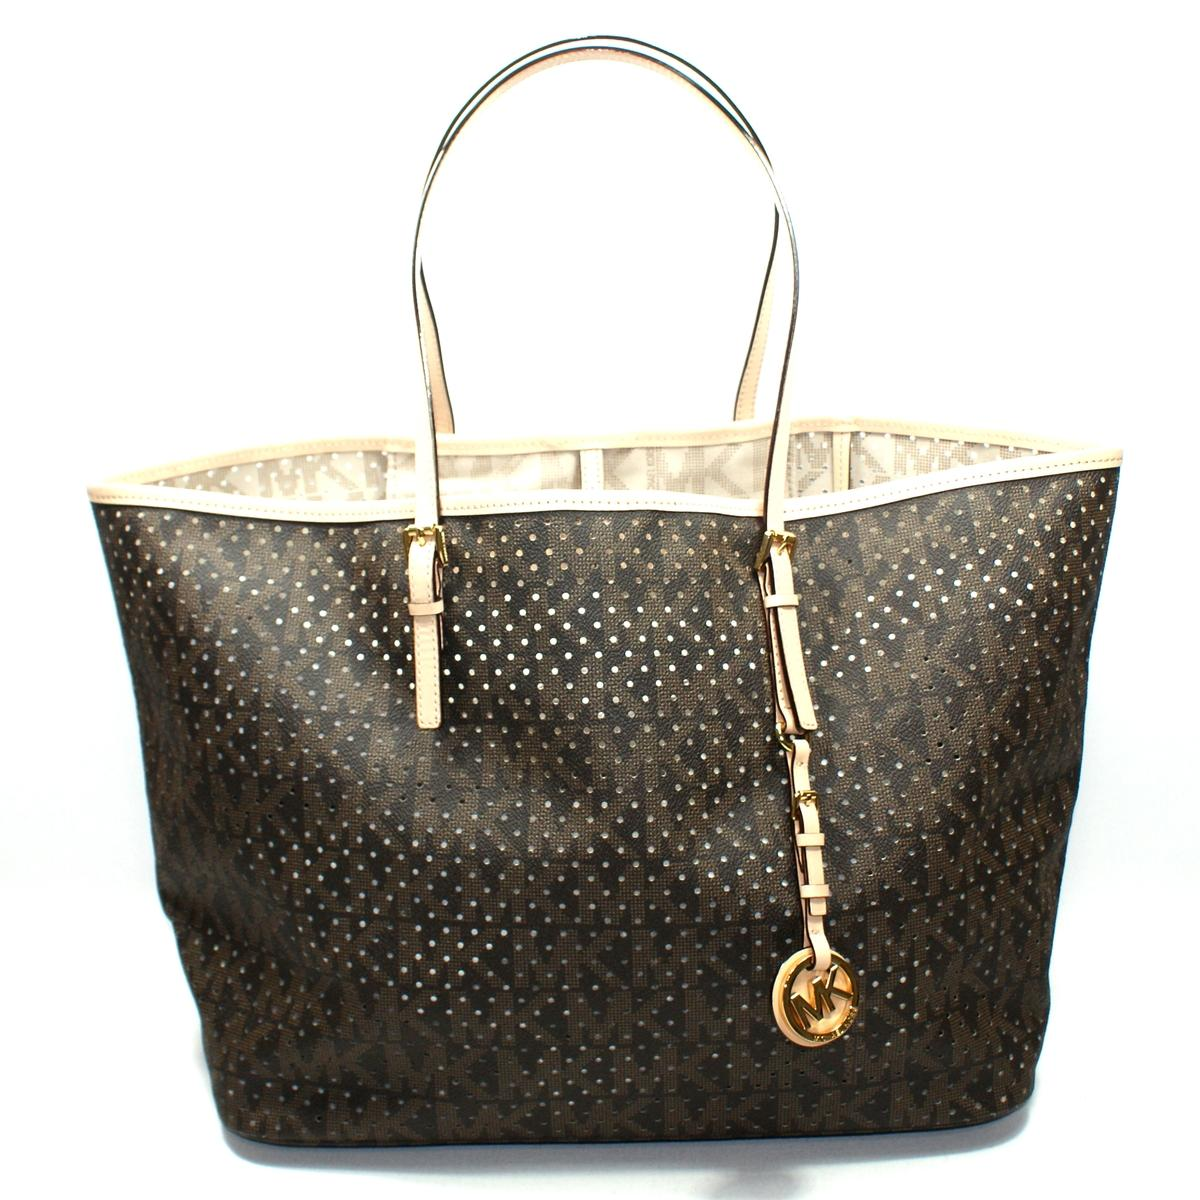 1a73bb7bbb1d59 Home · Michael Kors · Jet Set MK Signature Perforated Medium Travel Tote  Brown. CLICK THUMBNAIL TO ZOOM. Found ...